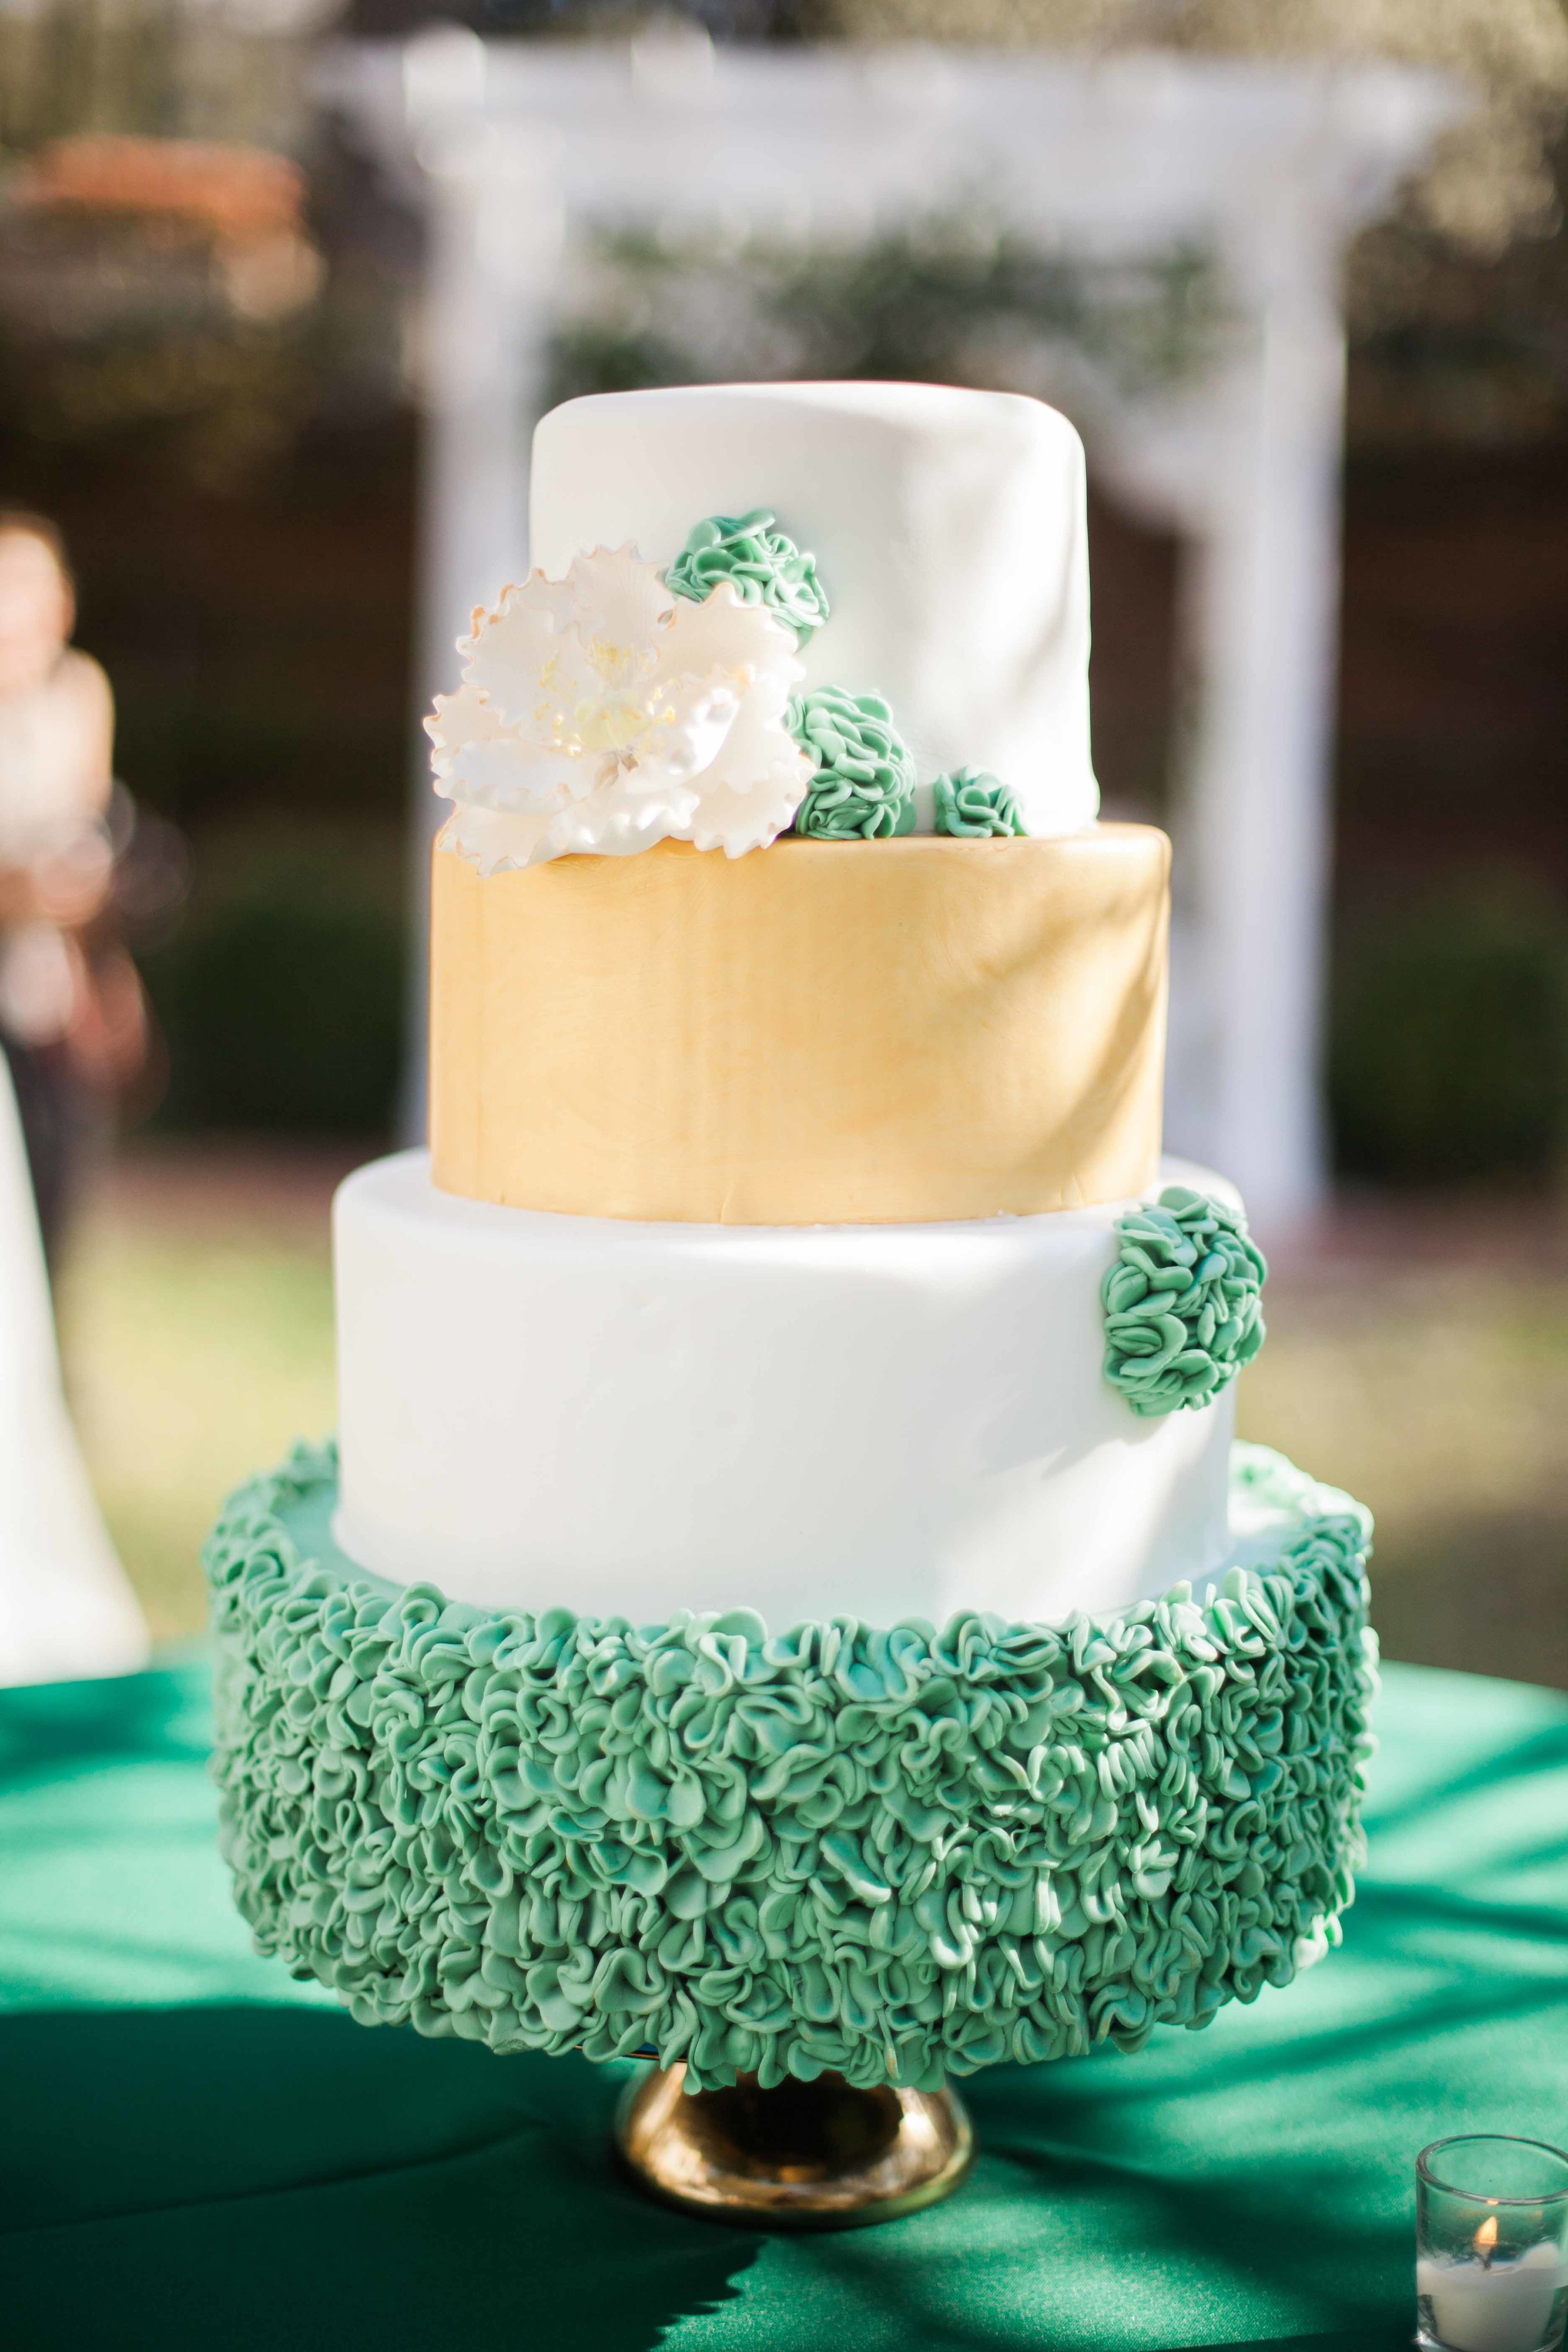 Four tiered green and gold cake with ruffled detailing by Creative Cake Design at Burgwin-Wright House